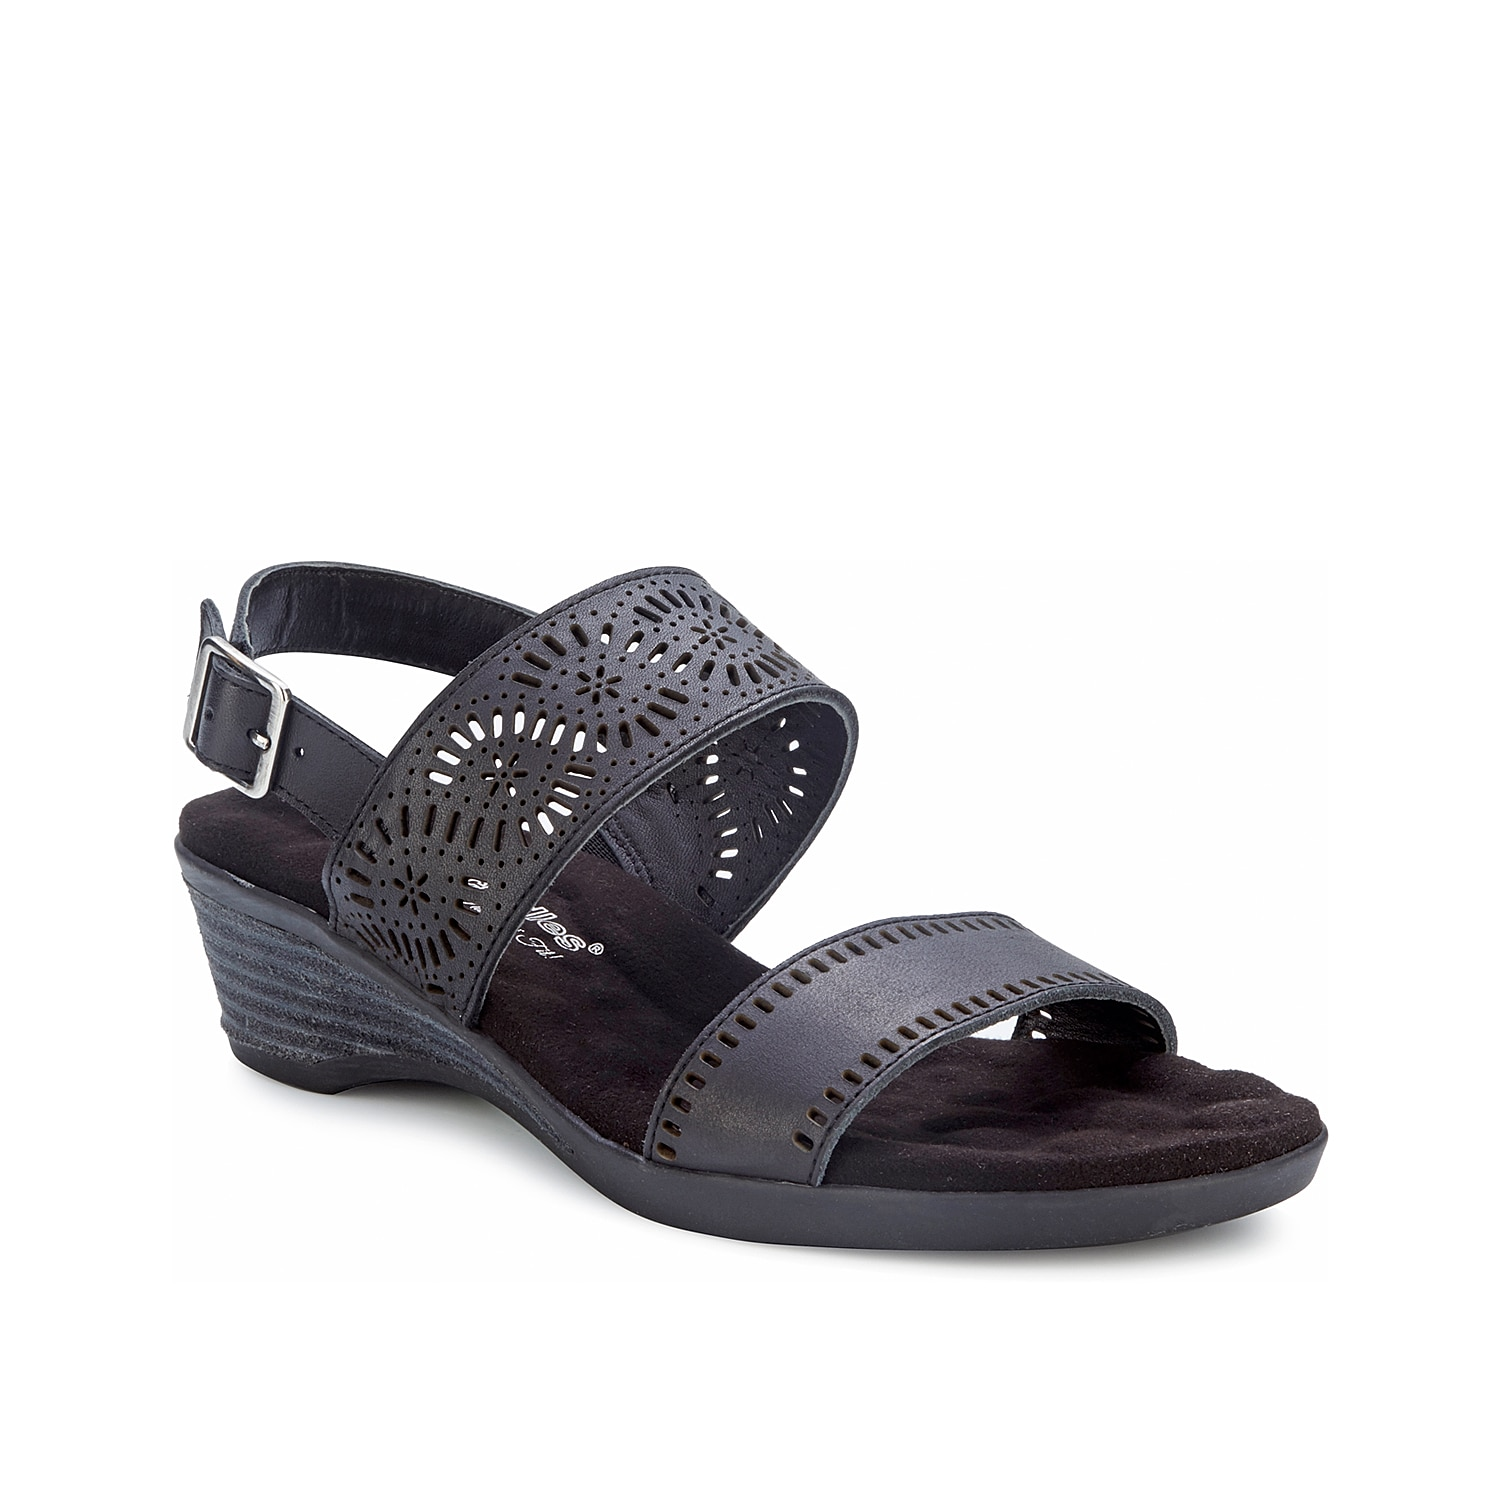 Featuring a Tiny Pillows footbed, the Krissy wedge sandal from Walking Cradles will keep you feeling your best. Laser-cut leather straps add a modern finishing touch to this slingback.